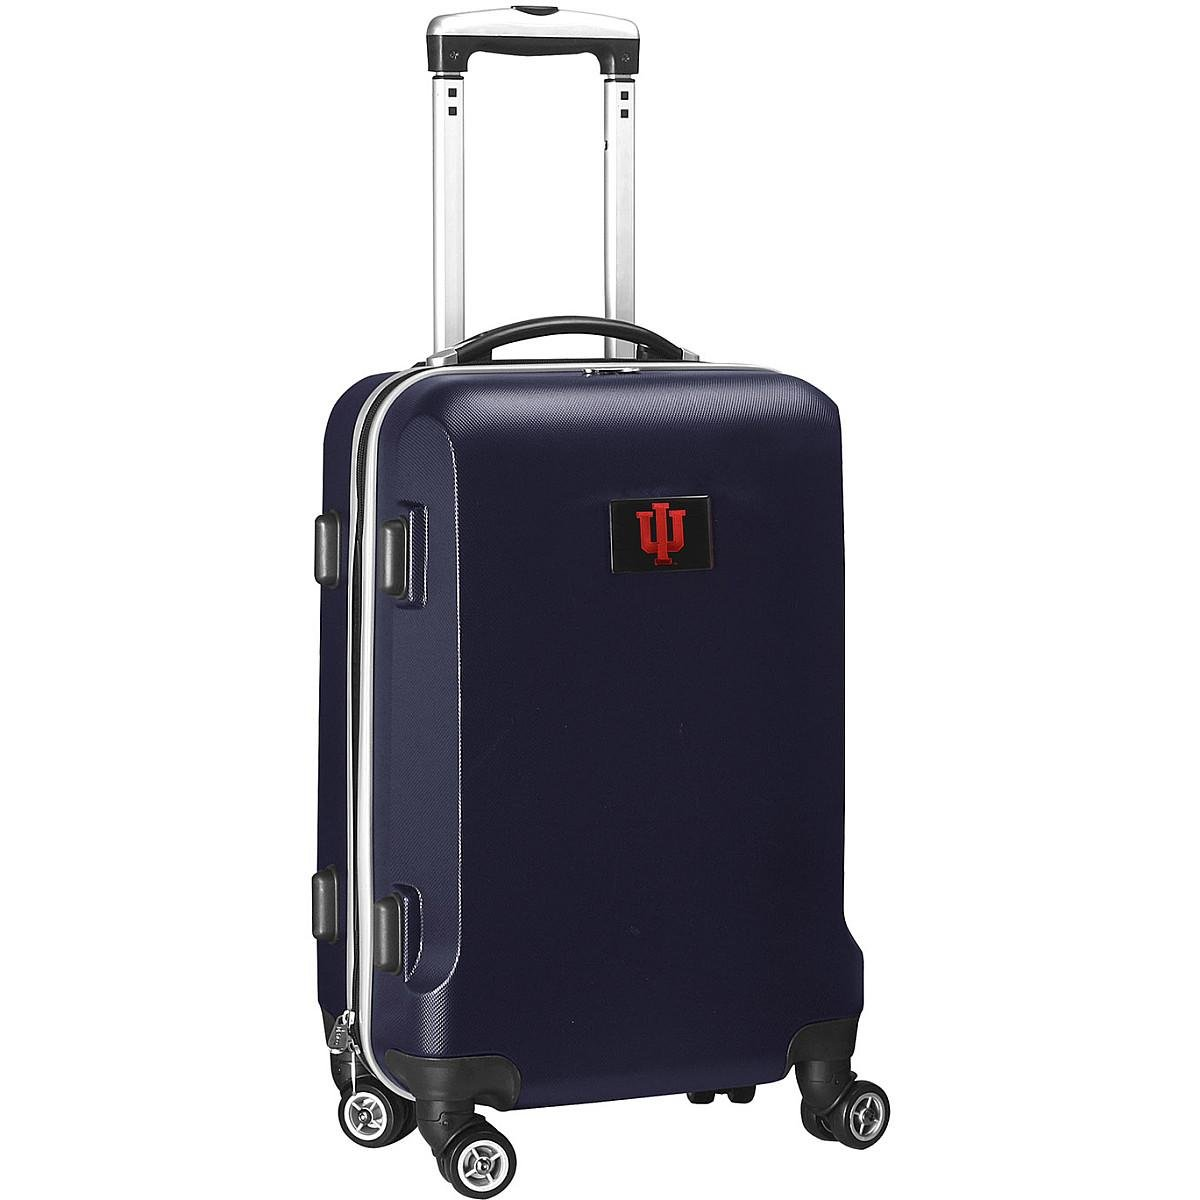 Denco NCAA Indiana Hoosiers Carry-On Hardcase Luggage Spinner, Navy